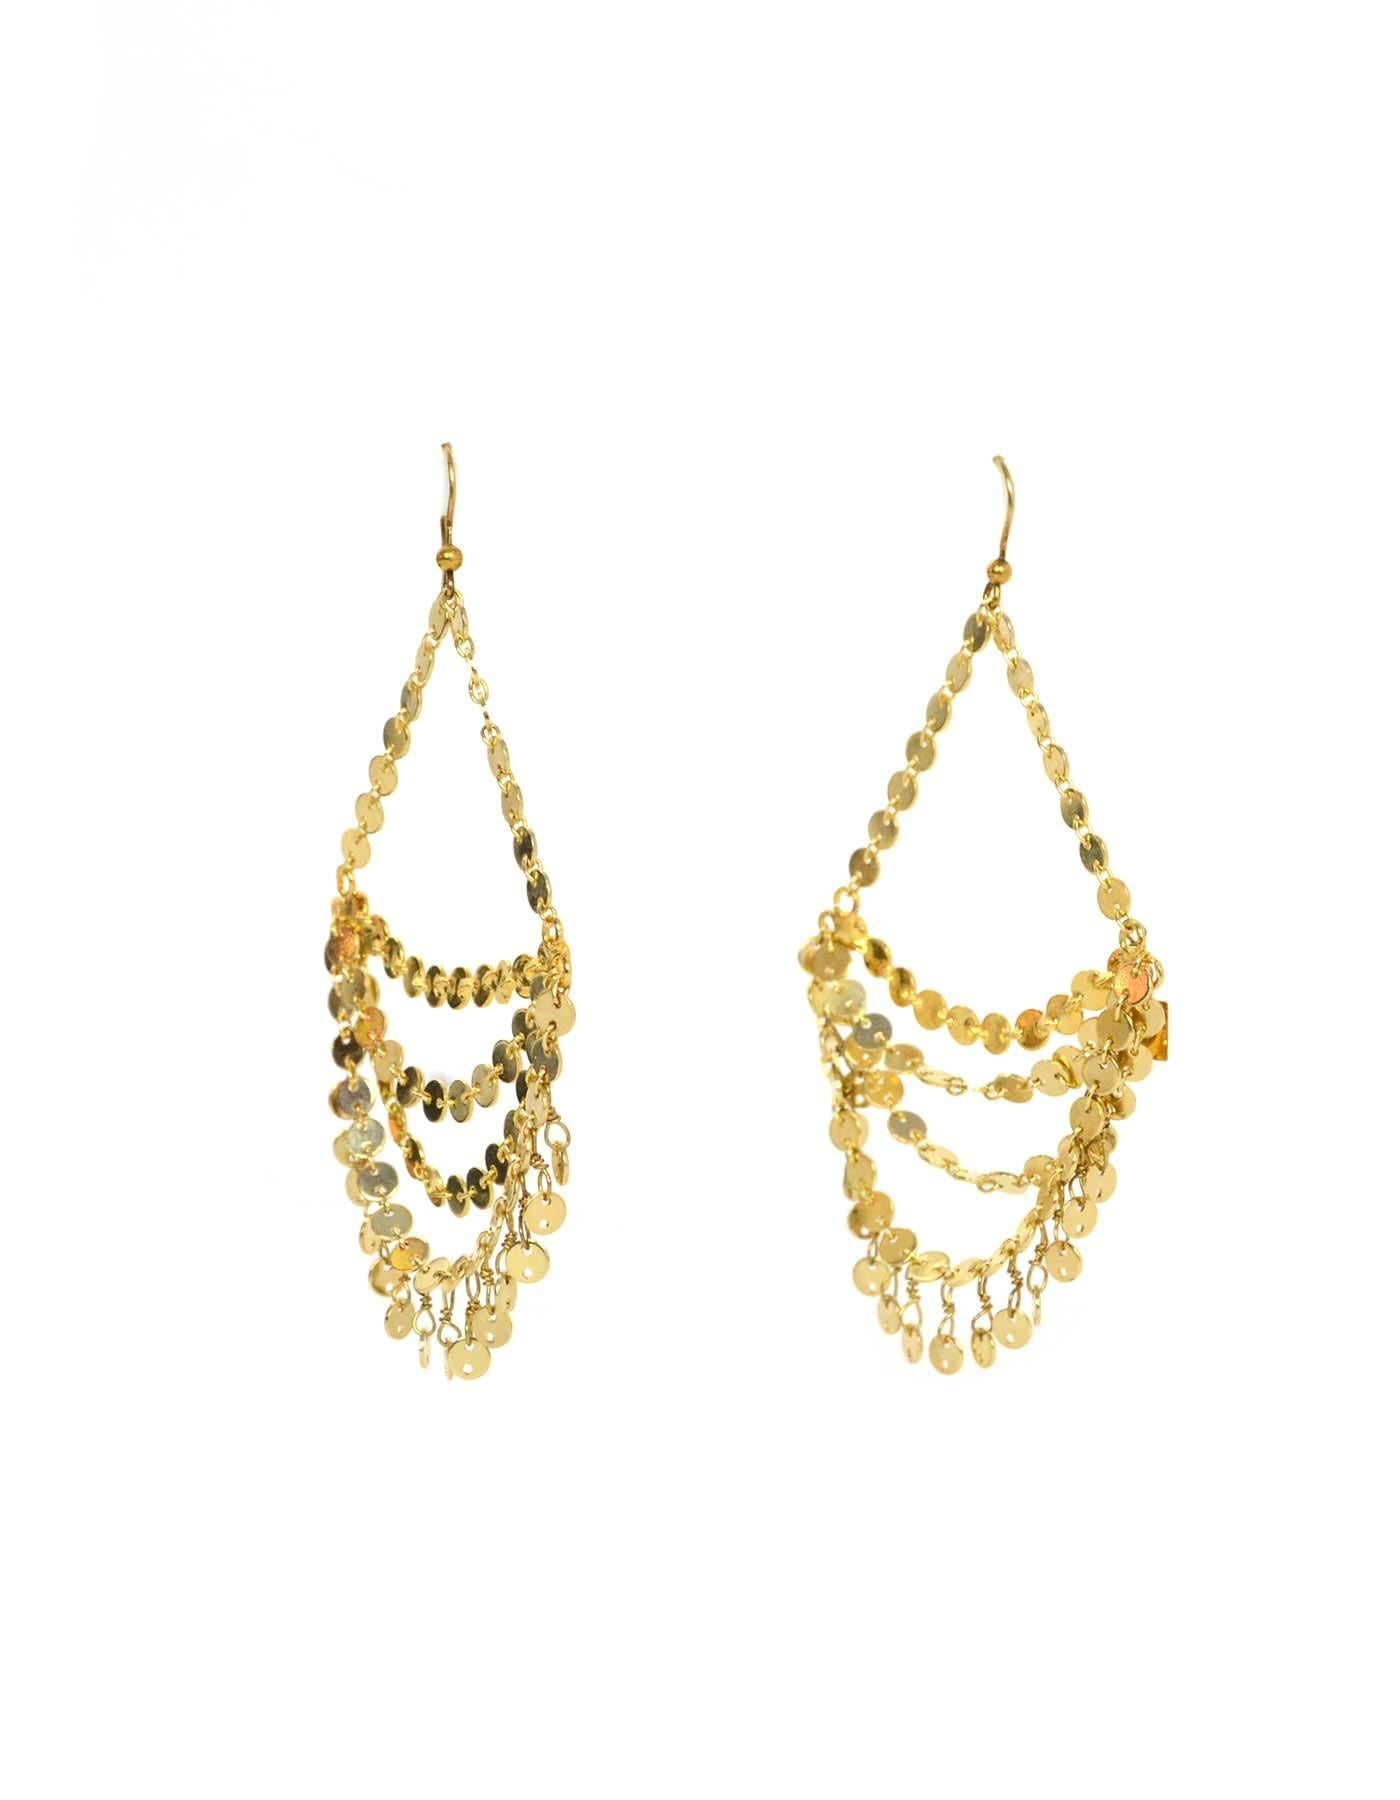 Rosantica goldtone chandelier earrings rt 215 at 1stdibs aloadofball Image collections